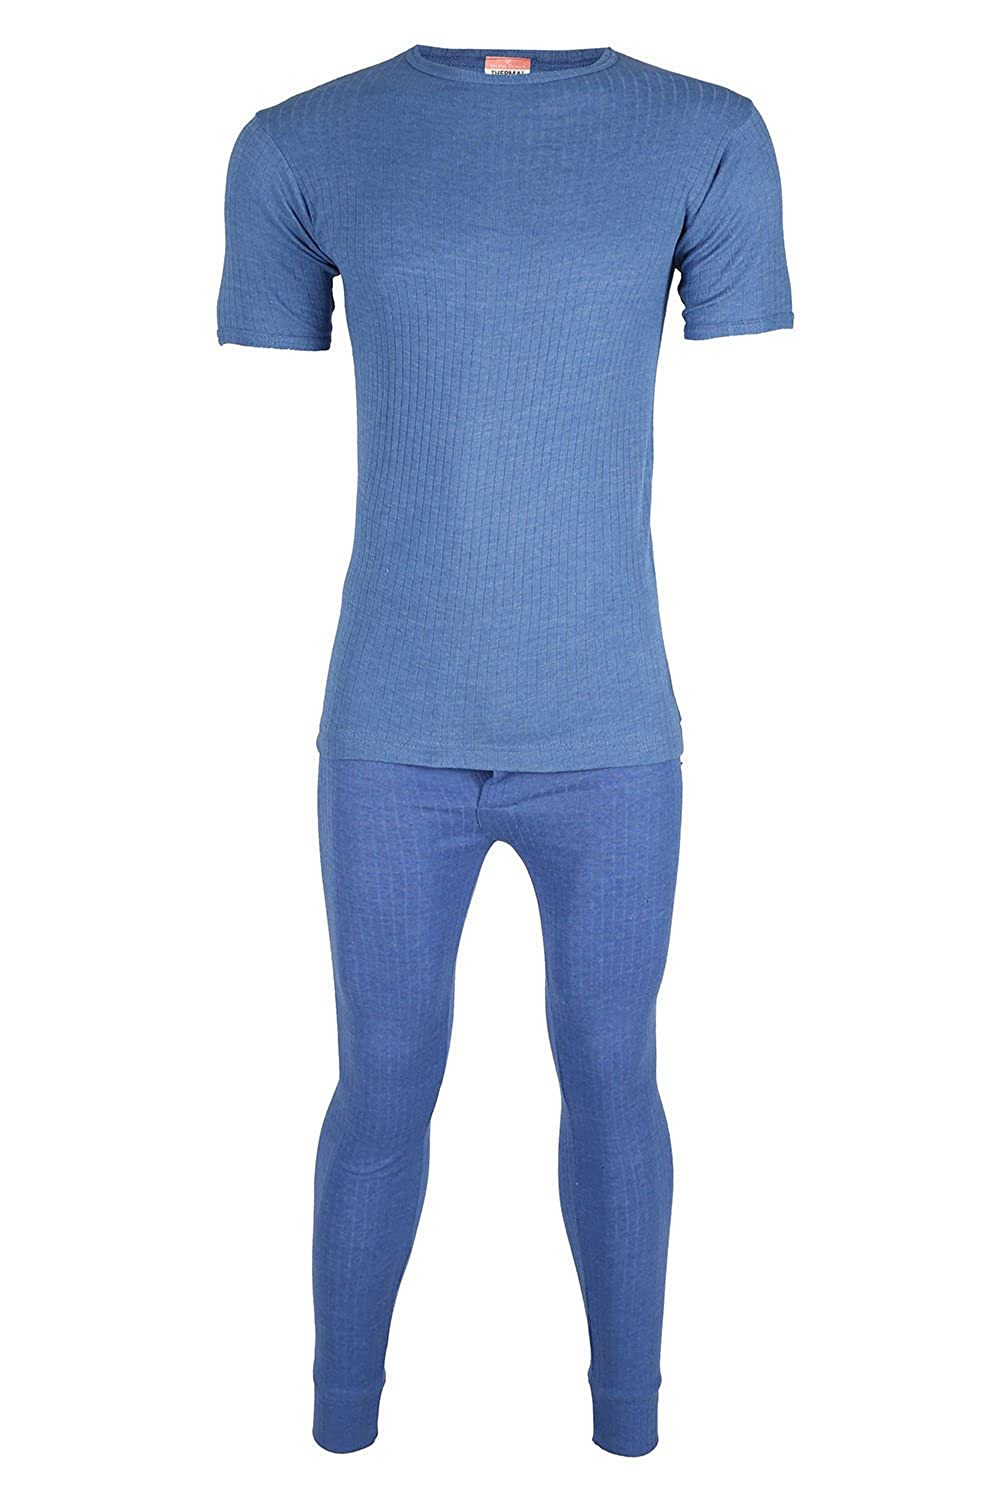 HIGH LIVING ® Mens Heat Control Thermal Long Sleeve T-Shirts & Long John Set Winter Underwear